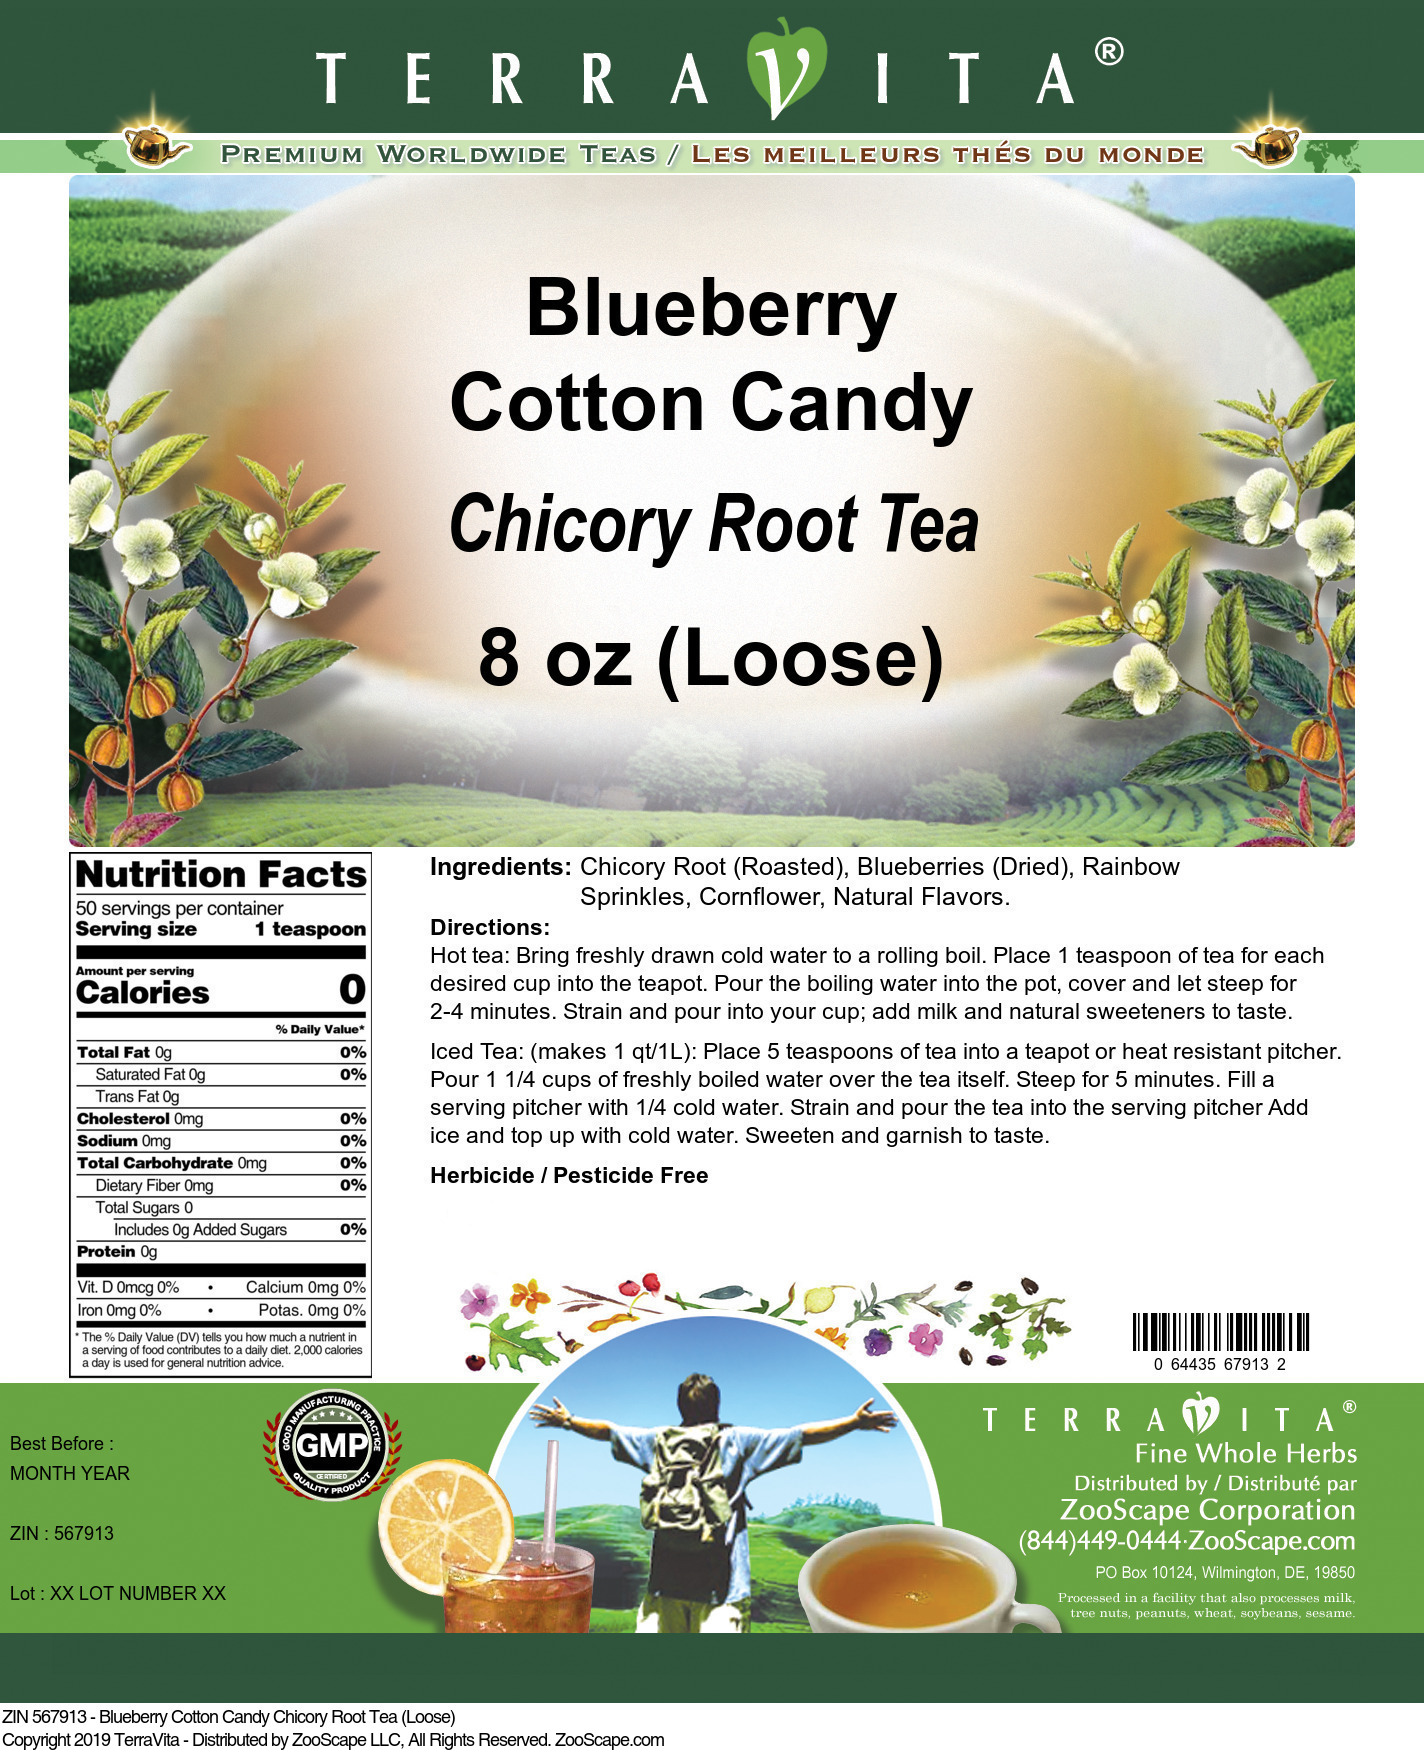 Blueberry Cotton Candy Chicory Root Tea (Loose)